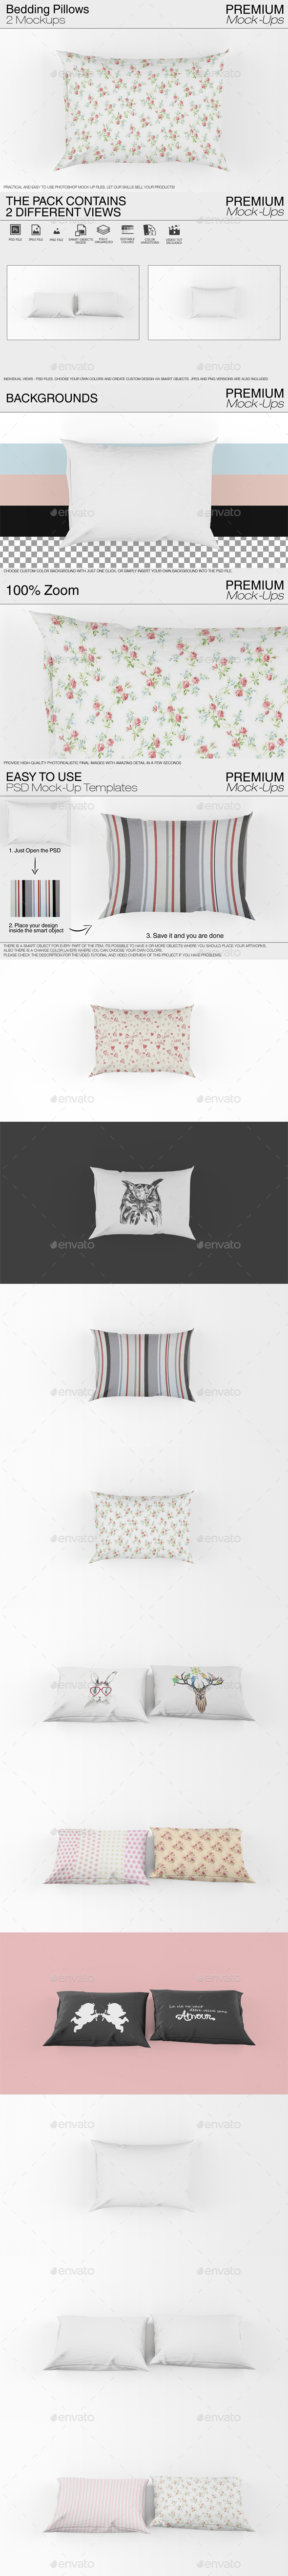 Bedding Pillows Mockup - Print Product Mock-Ups